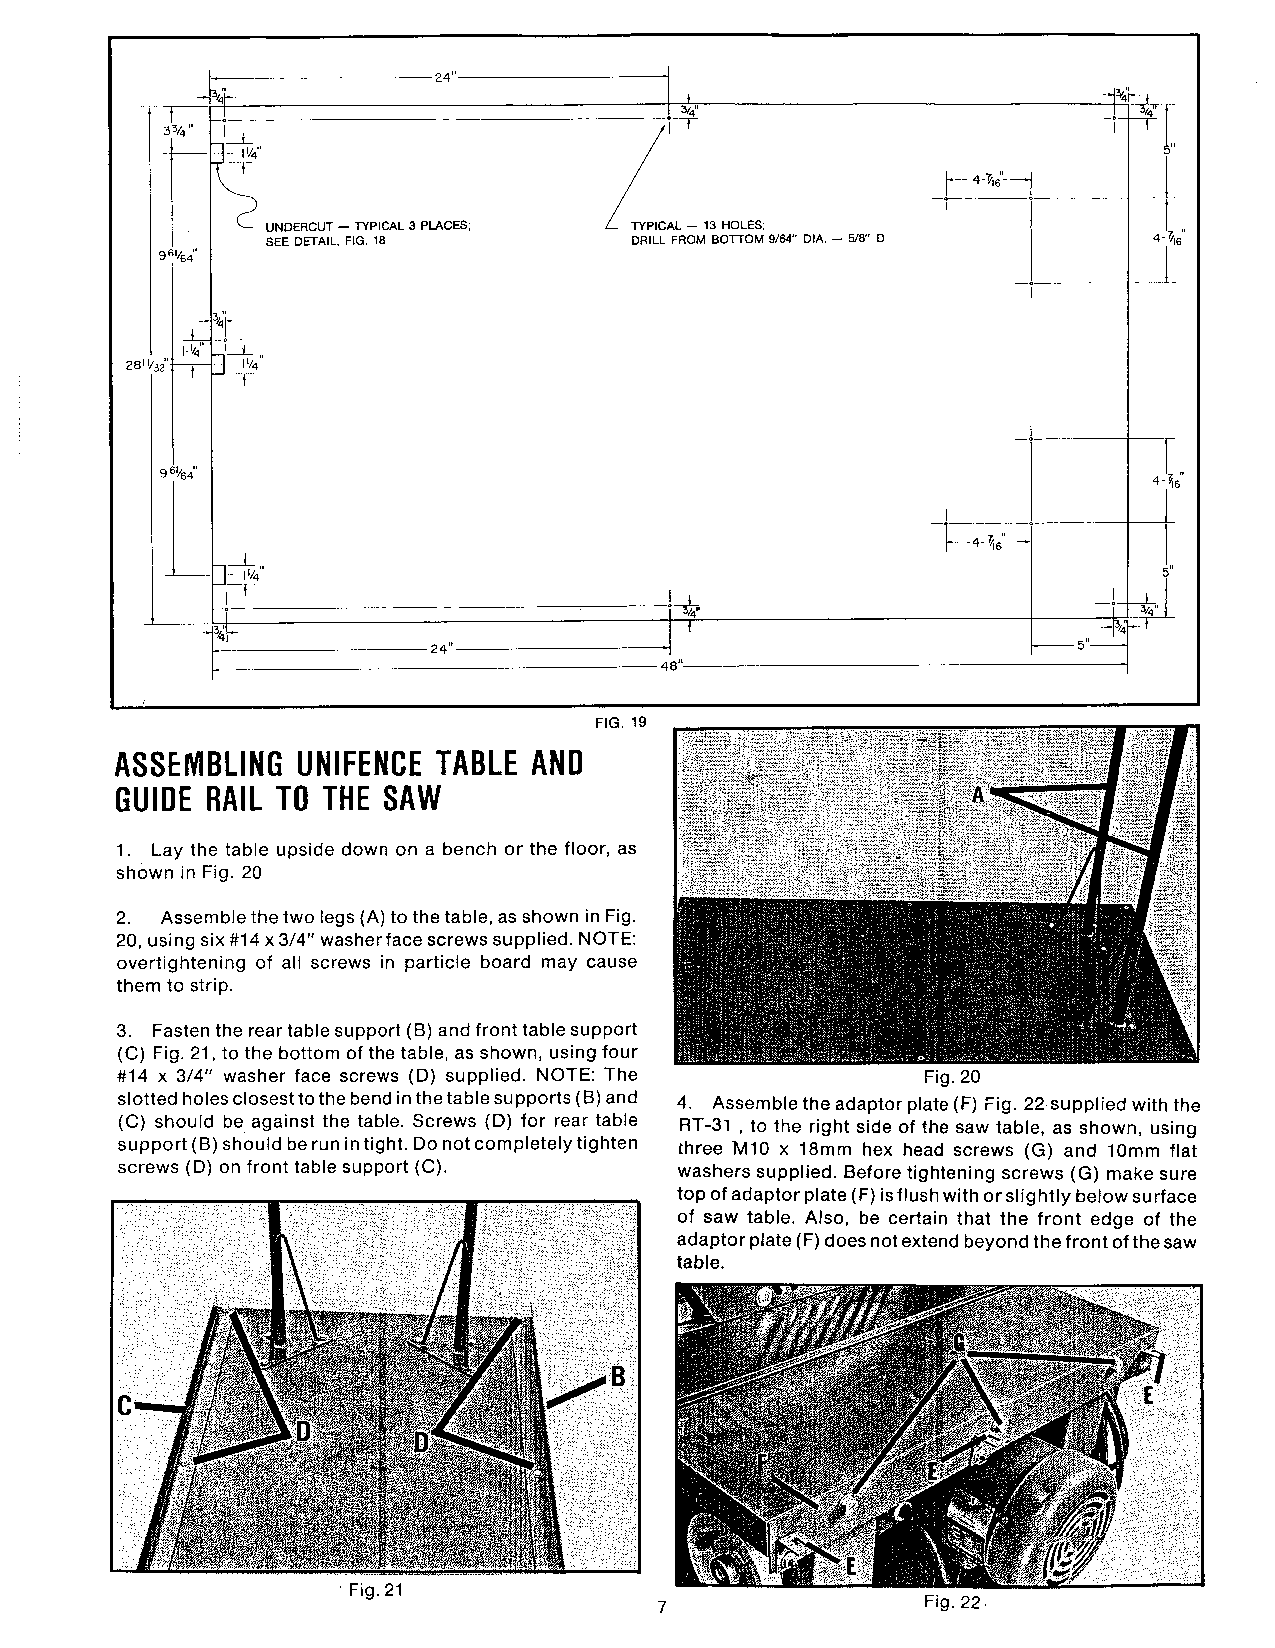 Delta RT-31 User Manual